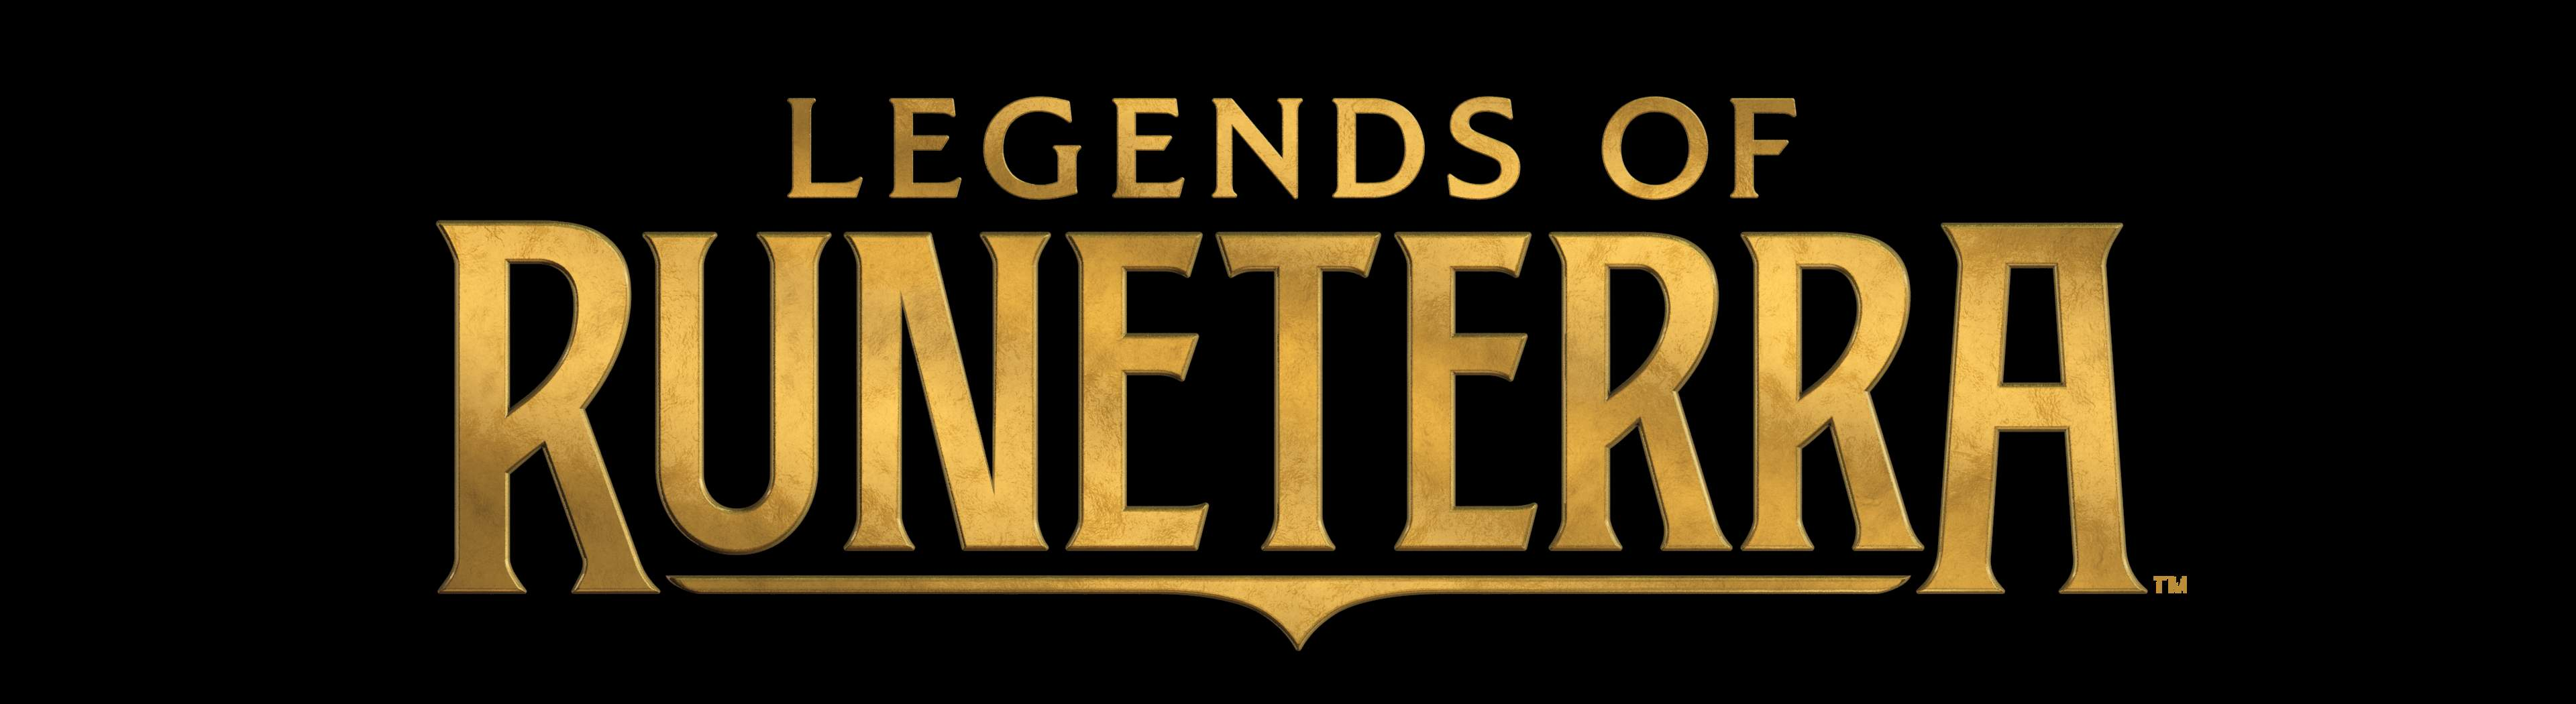 Legends of Runeterra: arrivano i Custodi dell